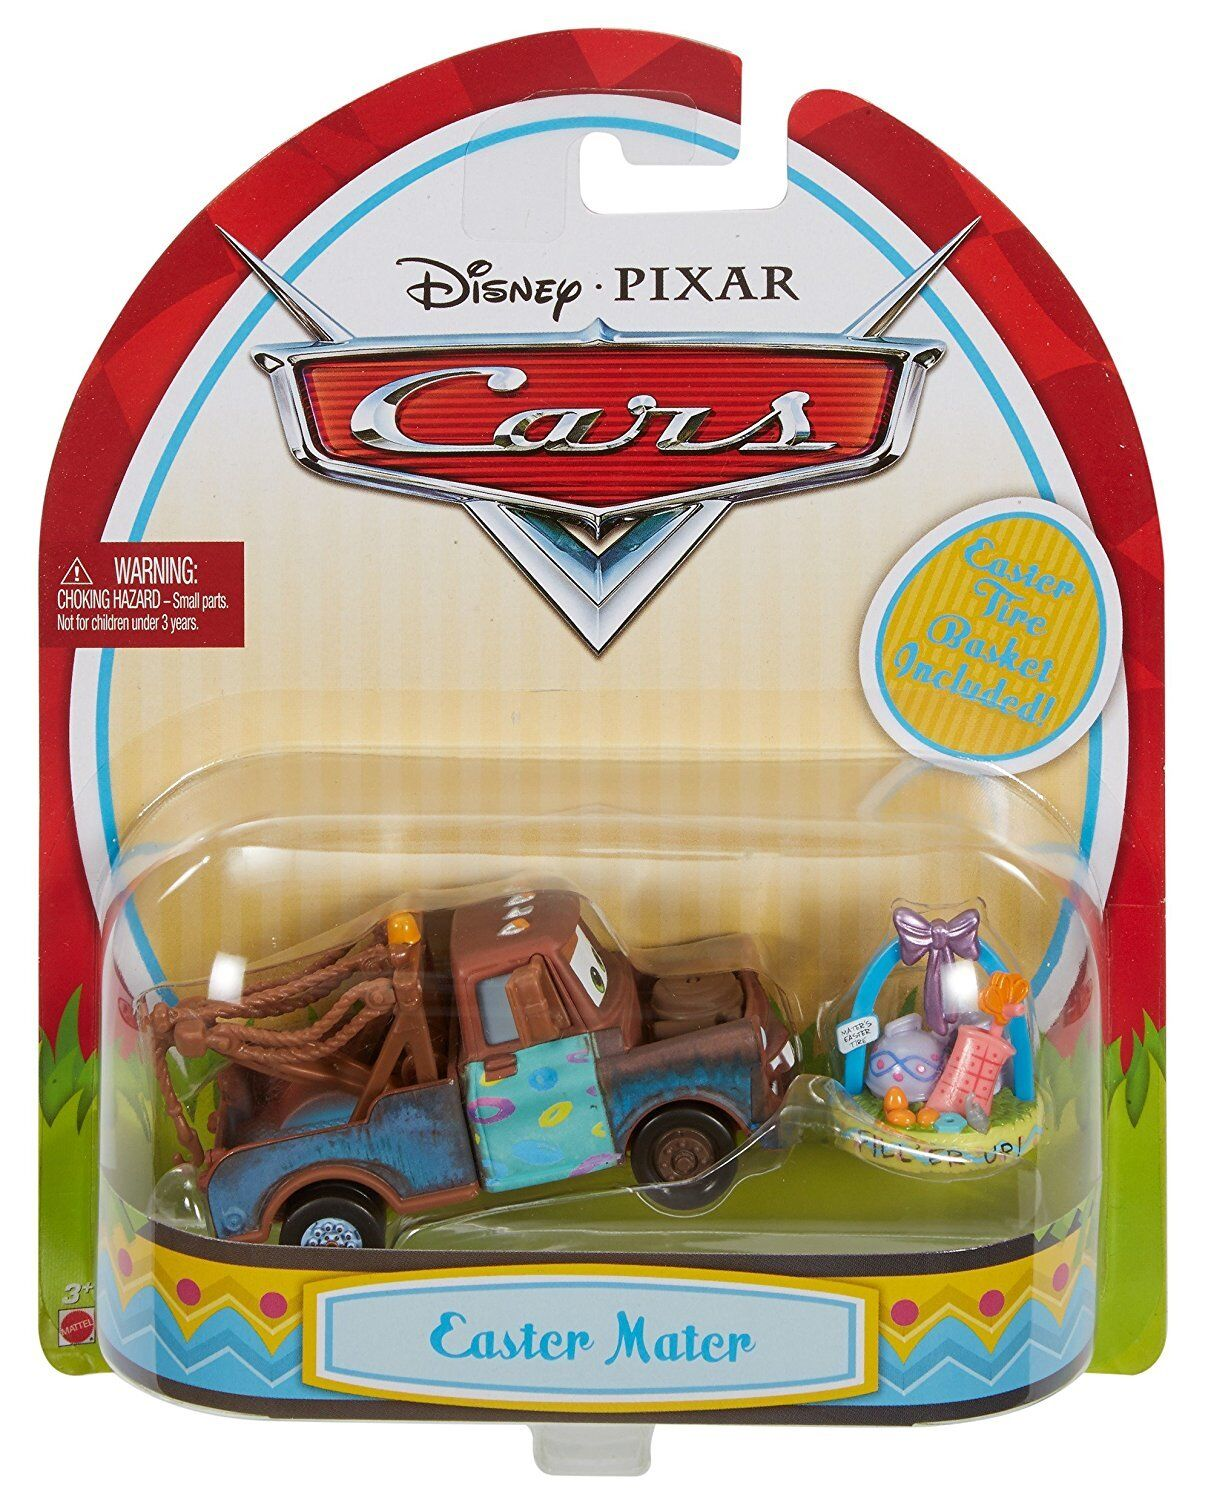 Disney Pixar Cars 2017 Easter Mater